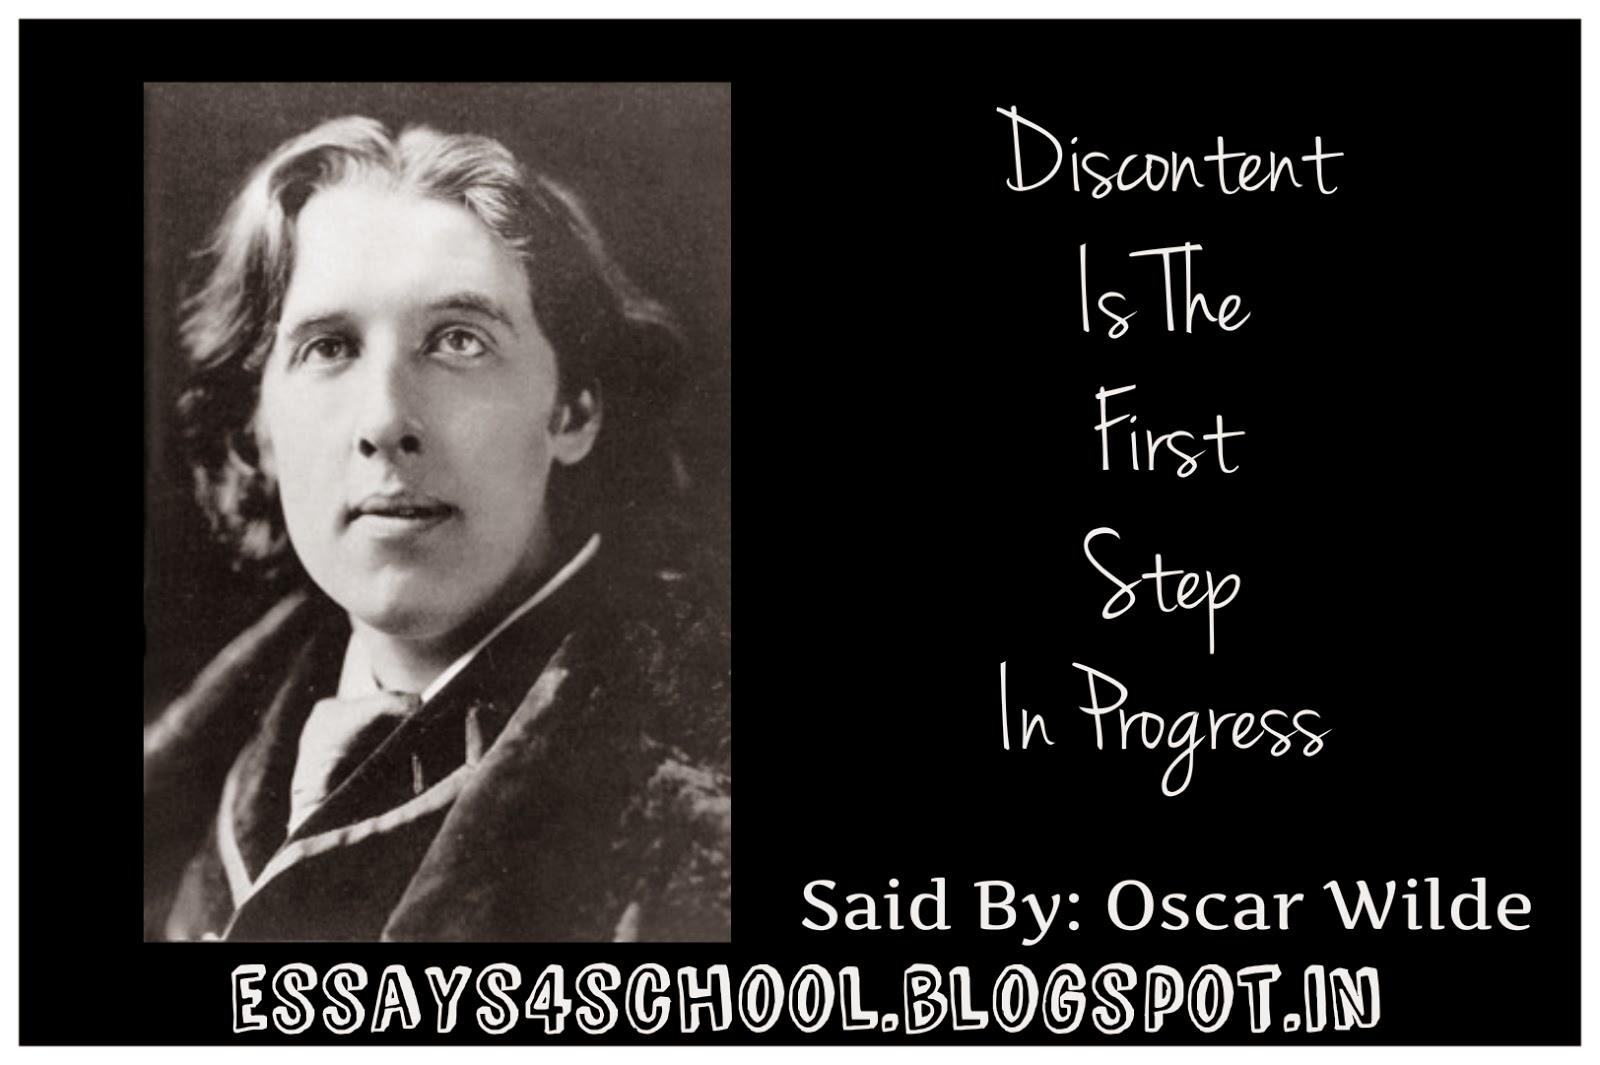 oscar wilde essay oscar wilde essay the decay of lying best images  essay on discontent is the first step in progress essays school essay on discontent is the oscar wilde writer com